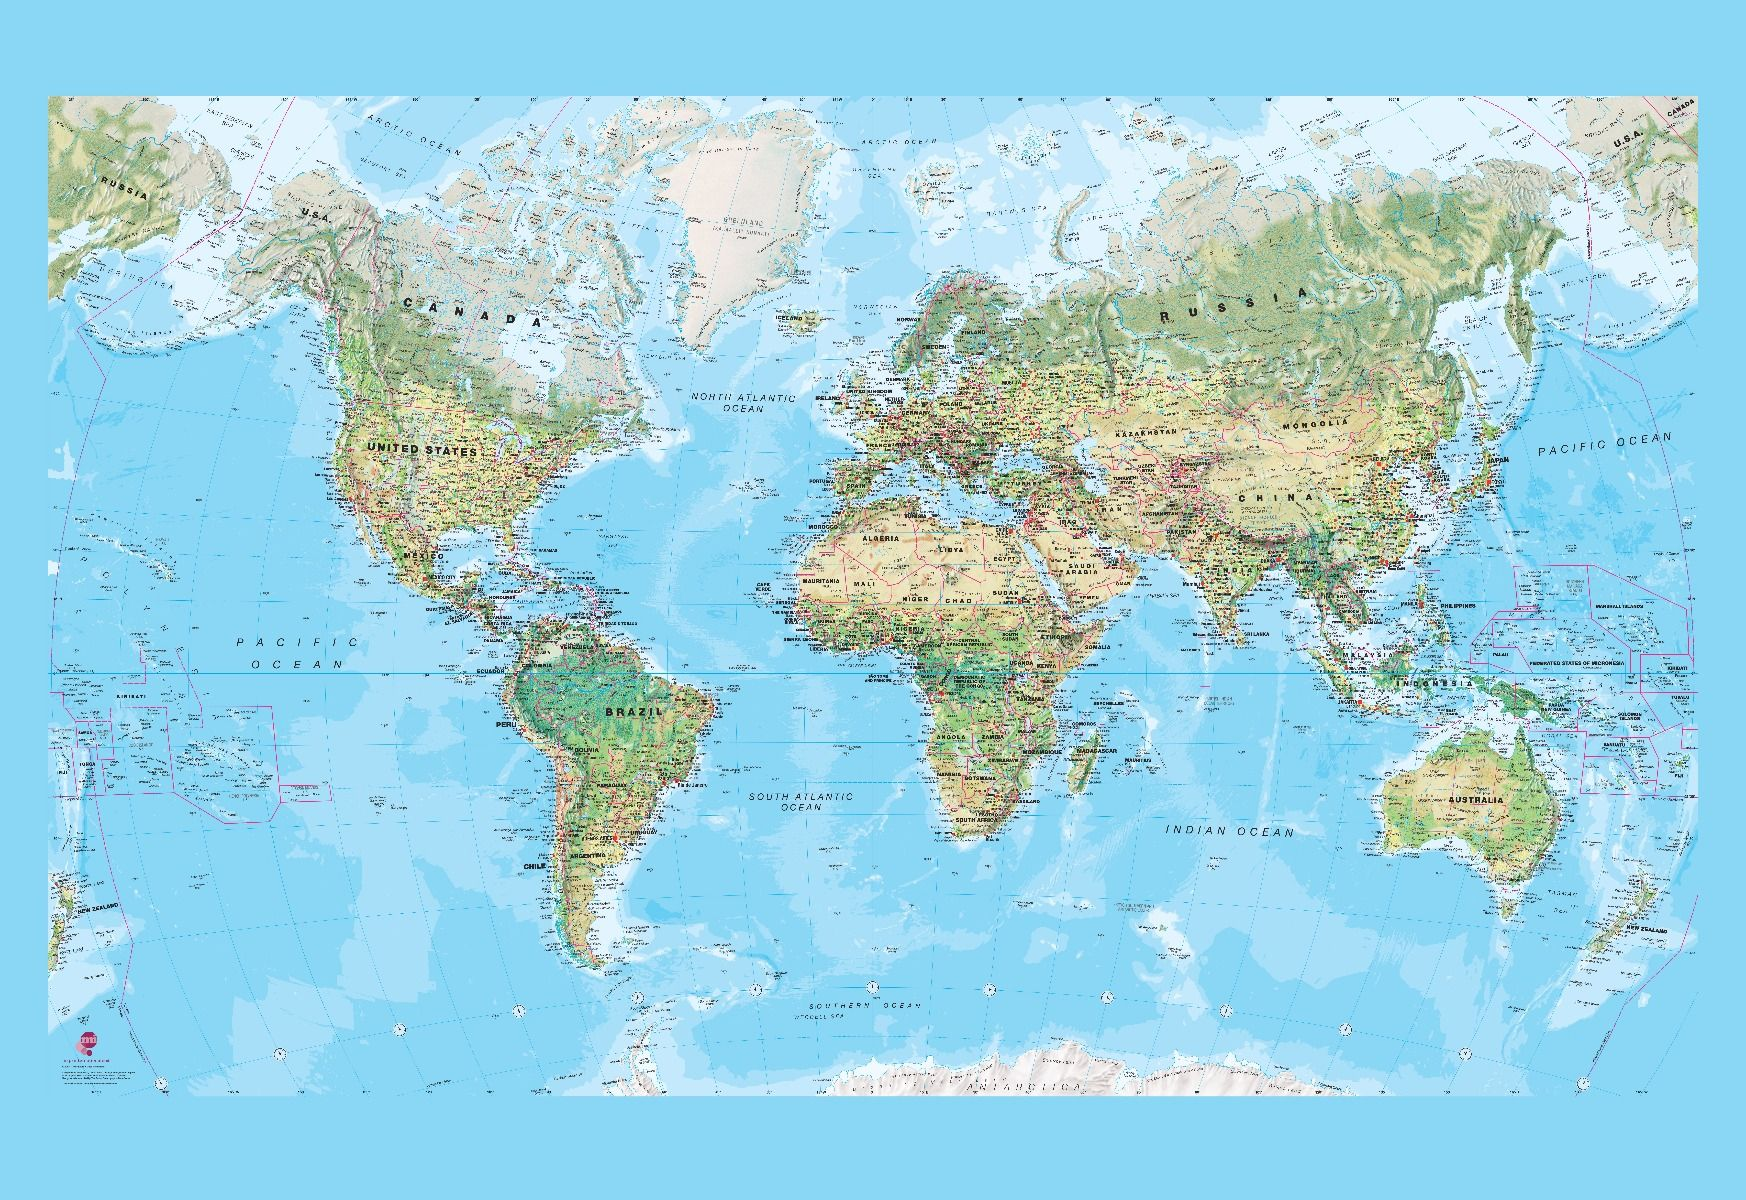 World Map Wallpaper environmental world map wallpaper